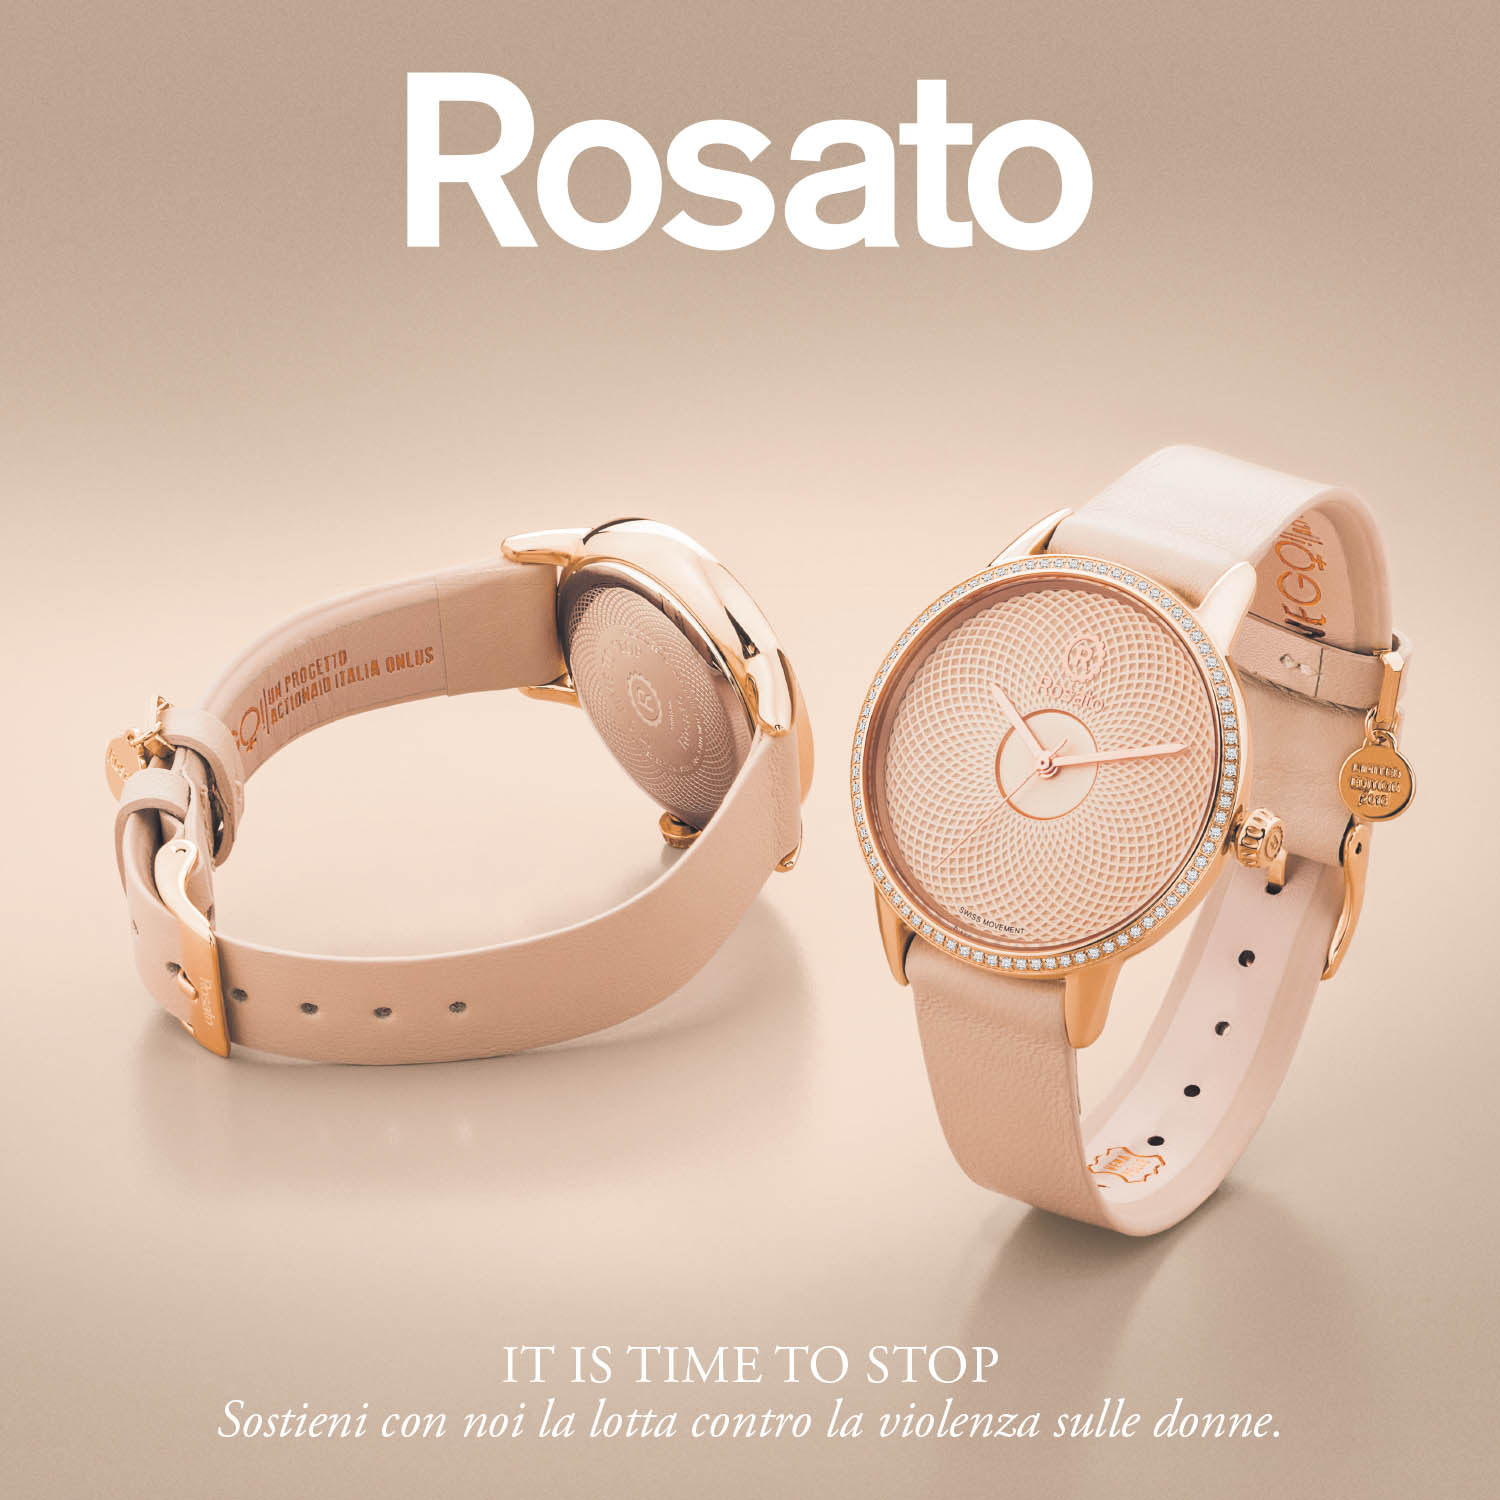 rosato-its-time-to-stop